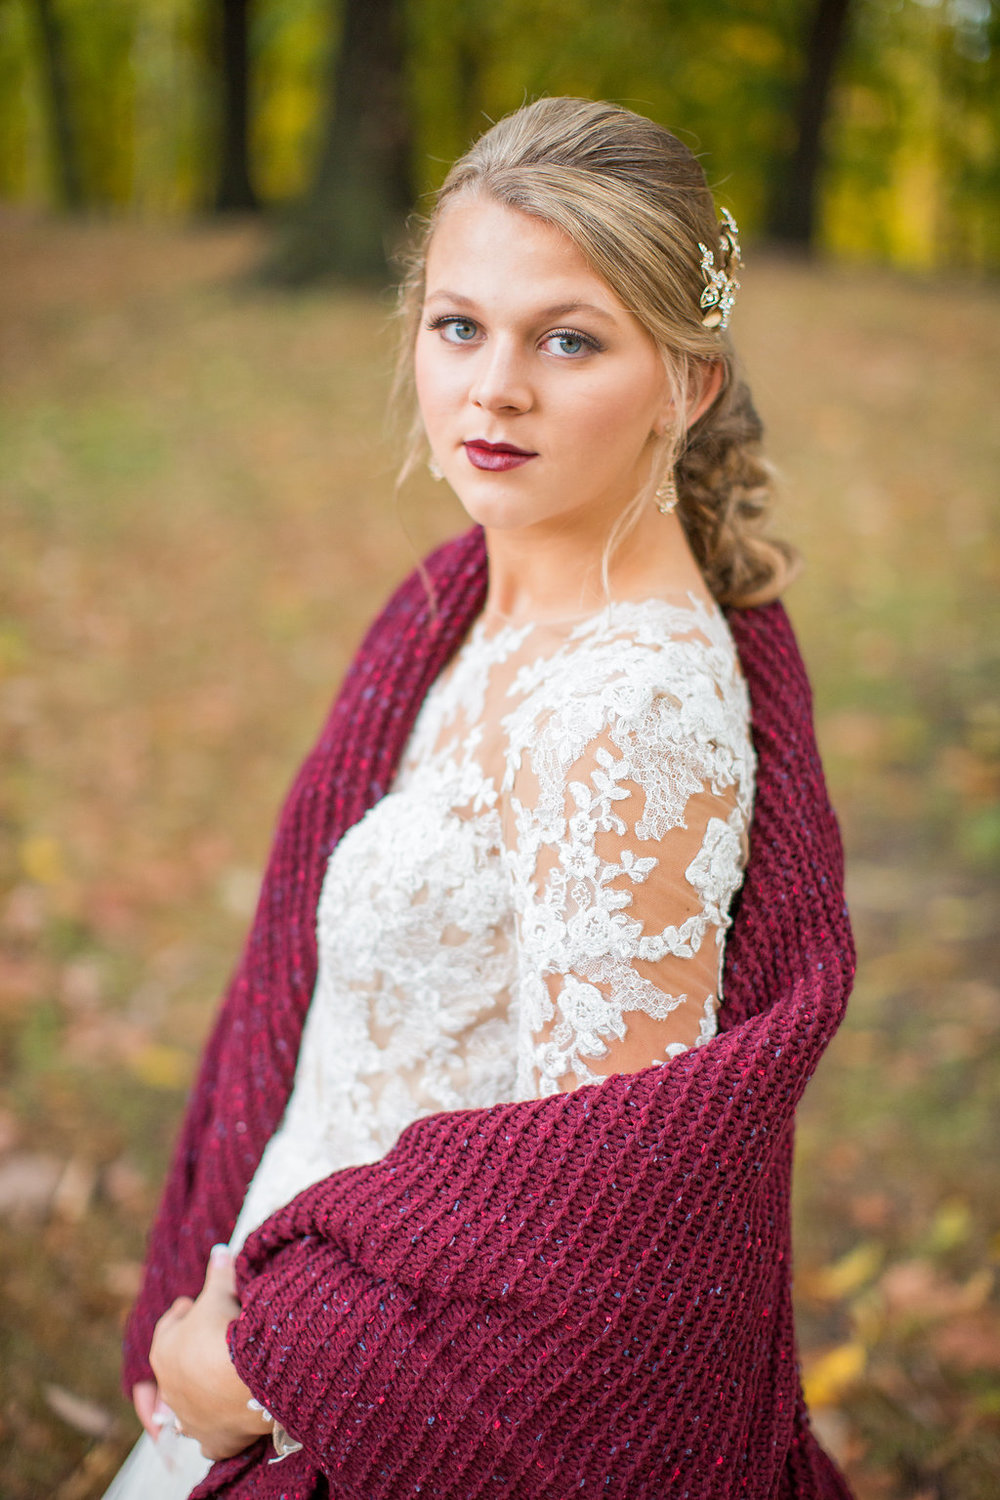 Merlot + Navy Fall Wedding Inspiration at Schenley Park with Blankets - Leight Up Life Photography (218).jpg